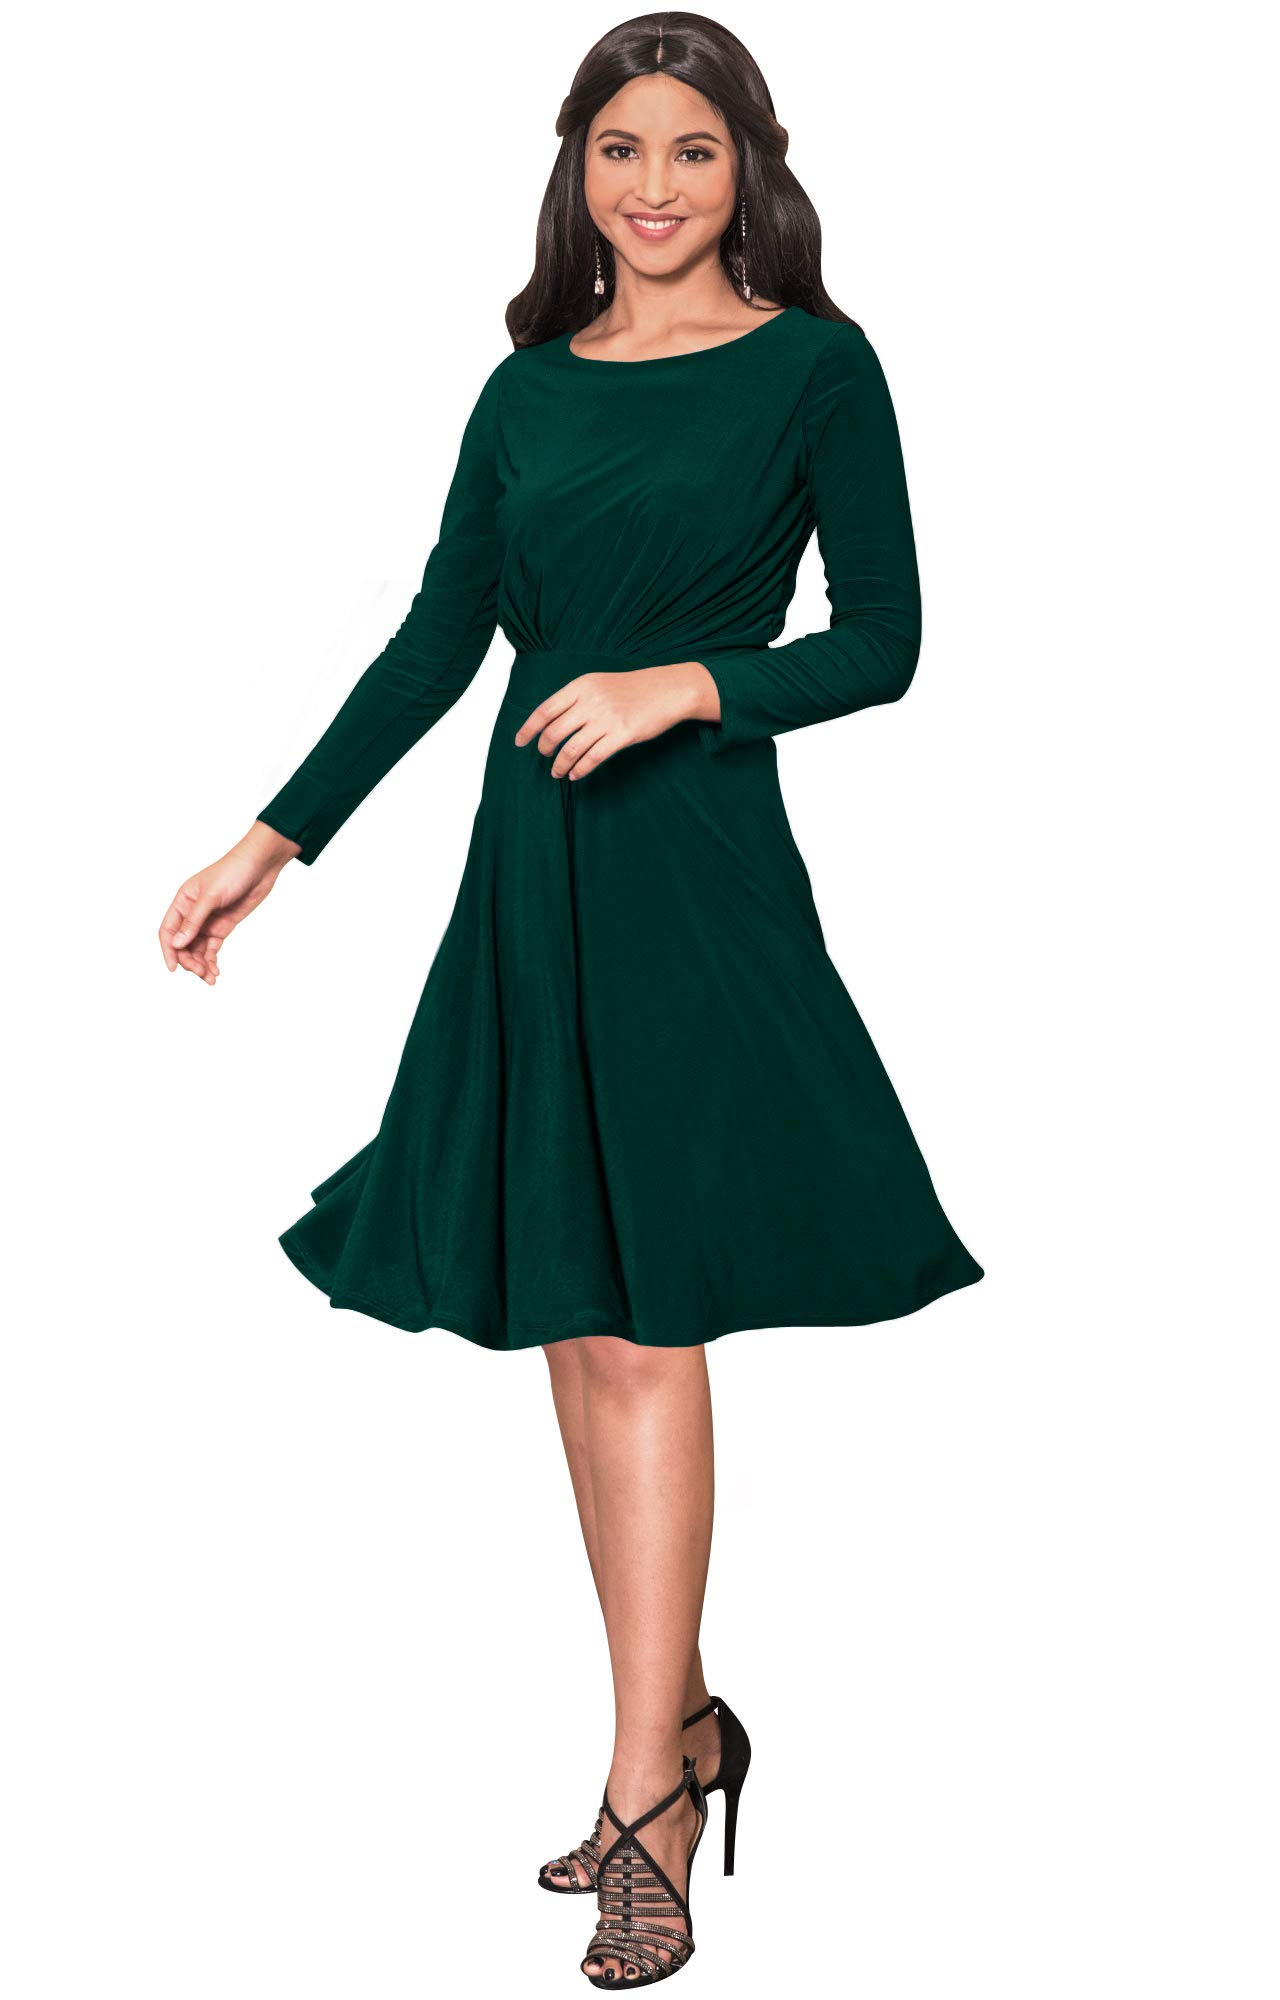 b298c3d8c14 ... Sleeve Dressy A-line Fall Winter Formal Flowy Work Empire Waist Knee  Length Vintage Swing Modest Cute Abaya Mini Midi Dress Dresses